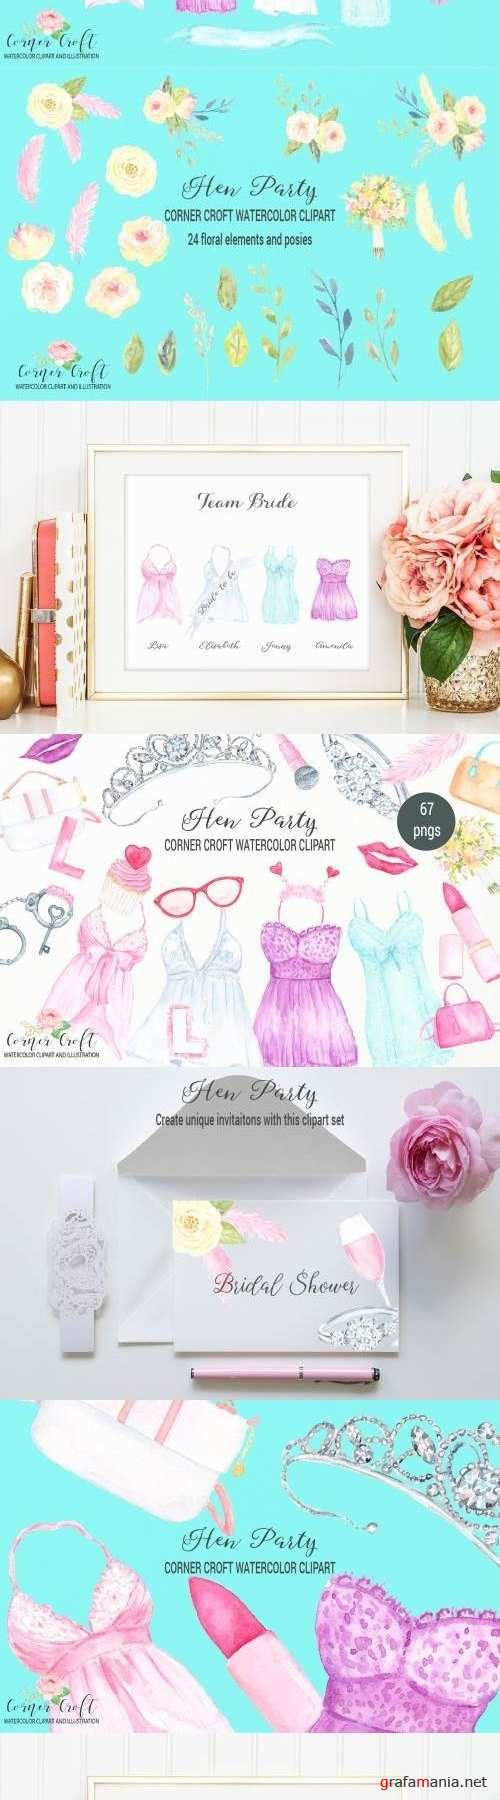 Watercolor Hen Party Clipart 2461453